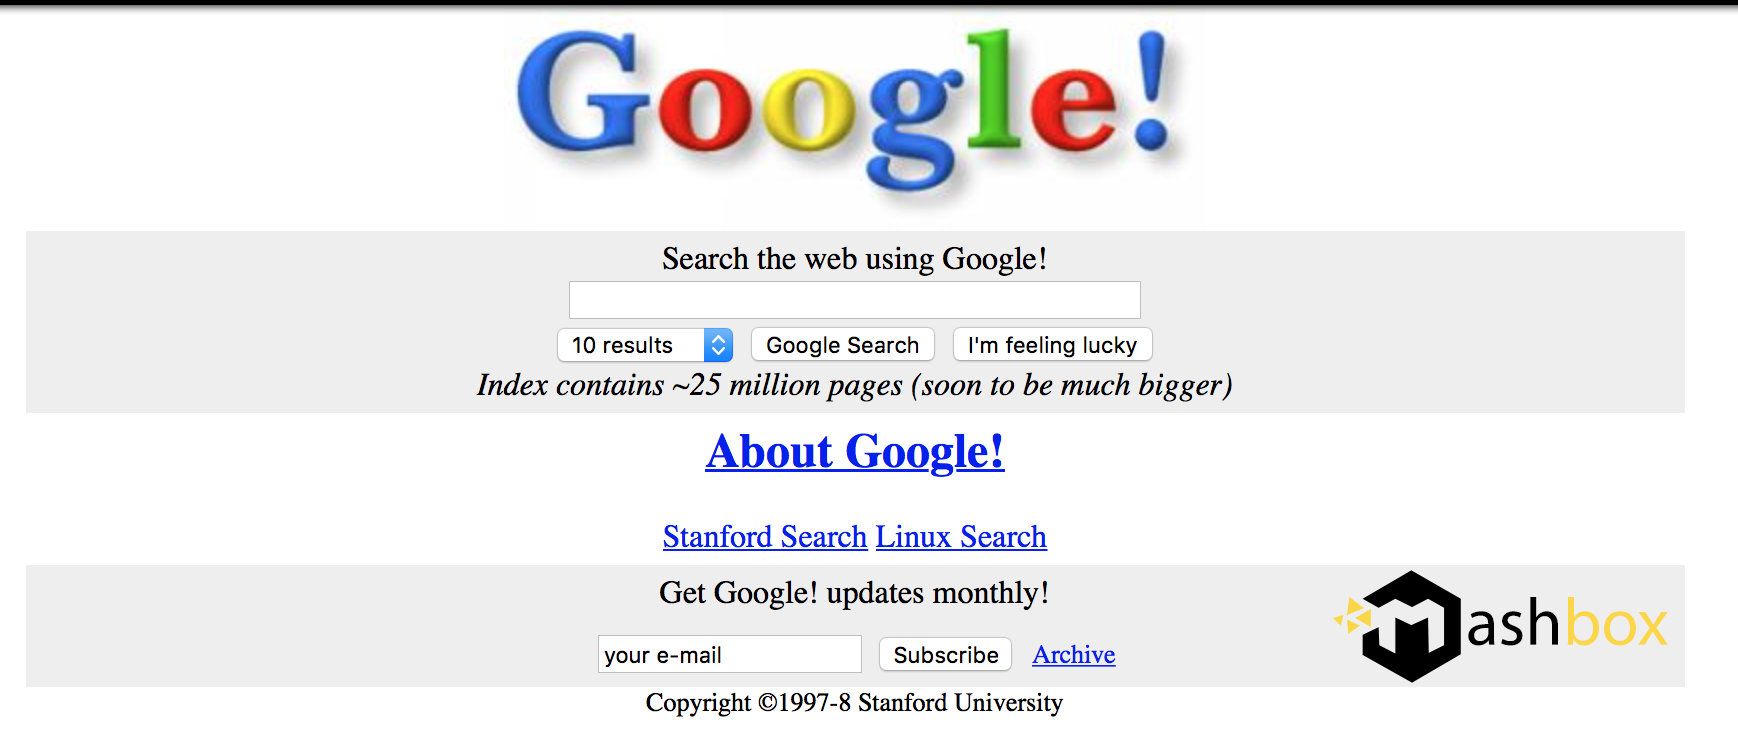 Famous Websites: From 0 to Millions of Users